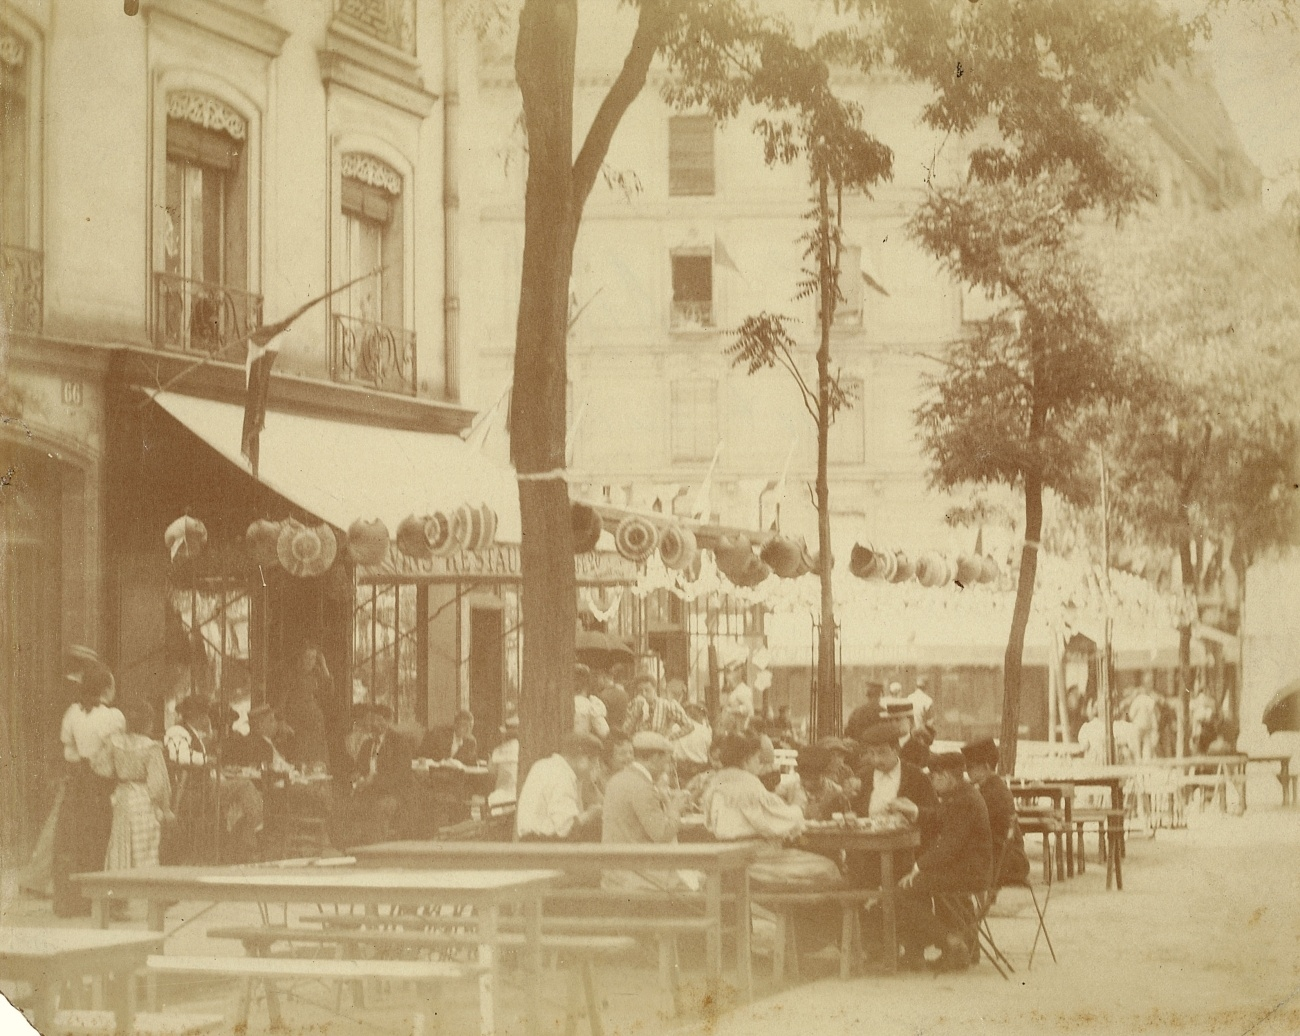 Atget Paris Place Ste Catherine, France